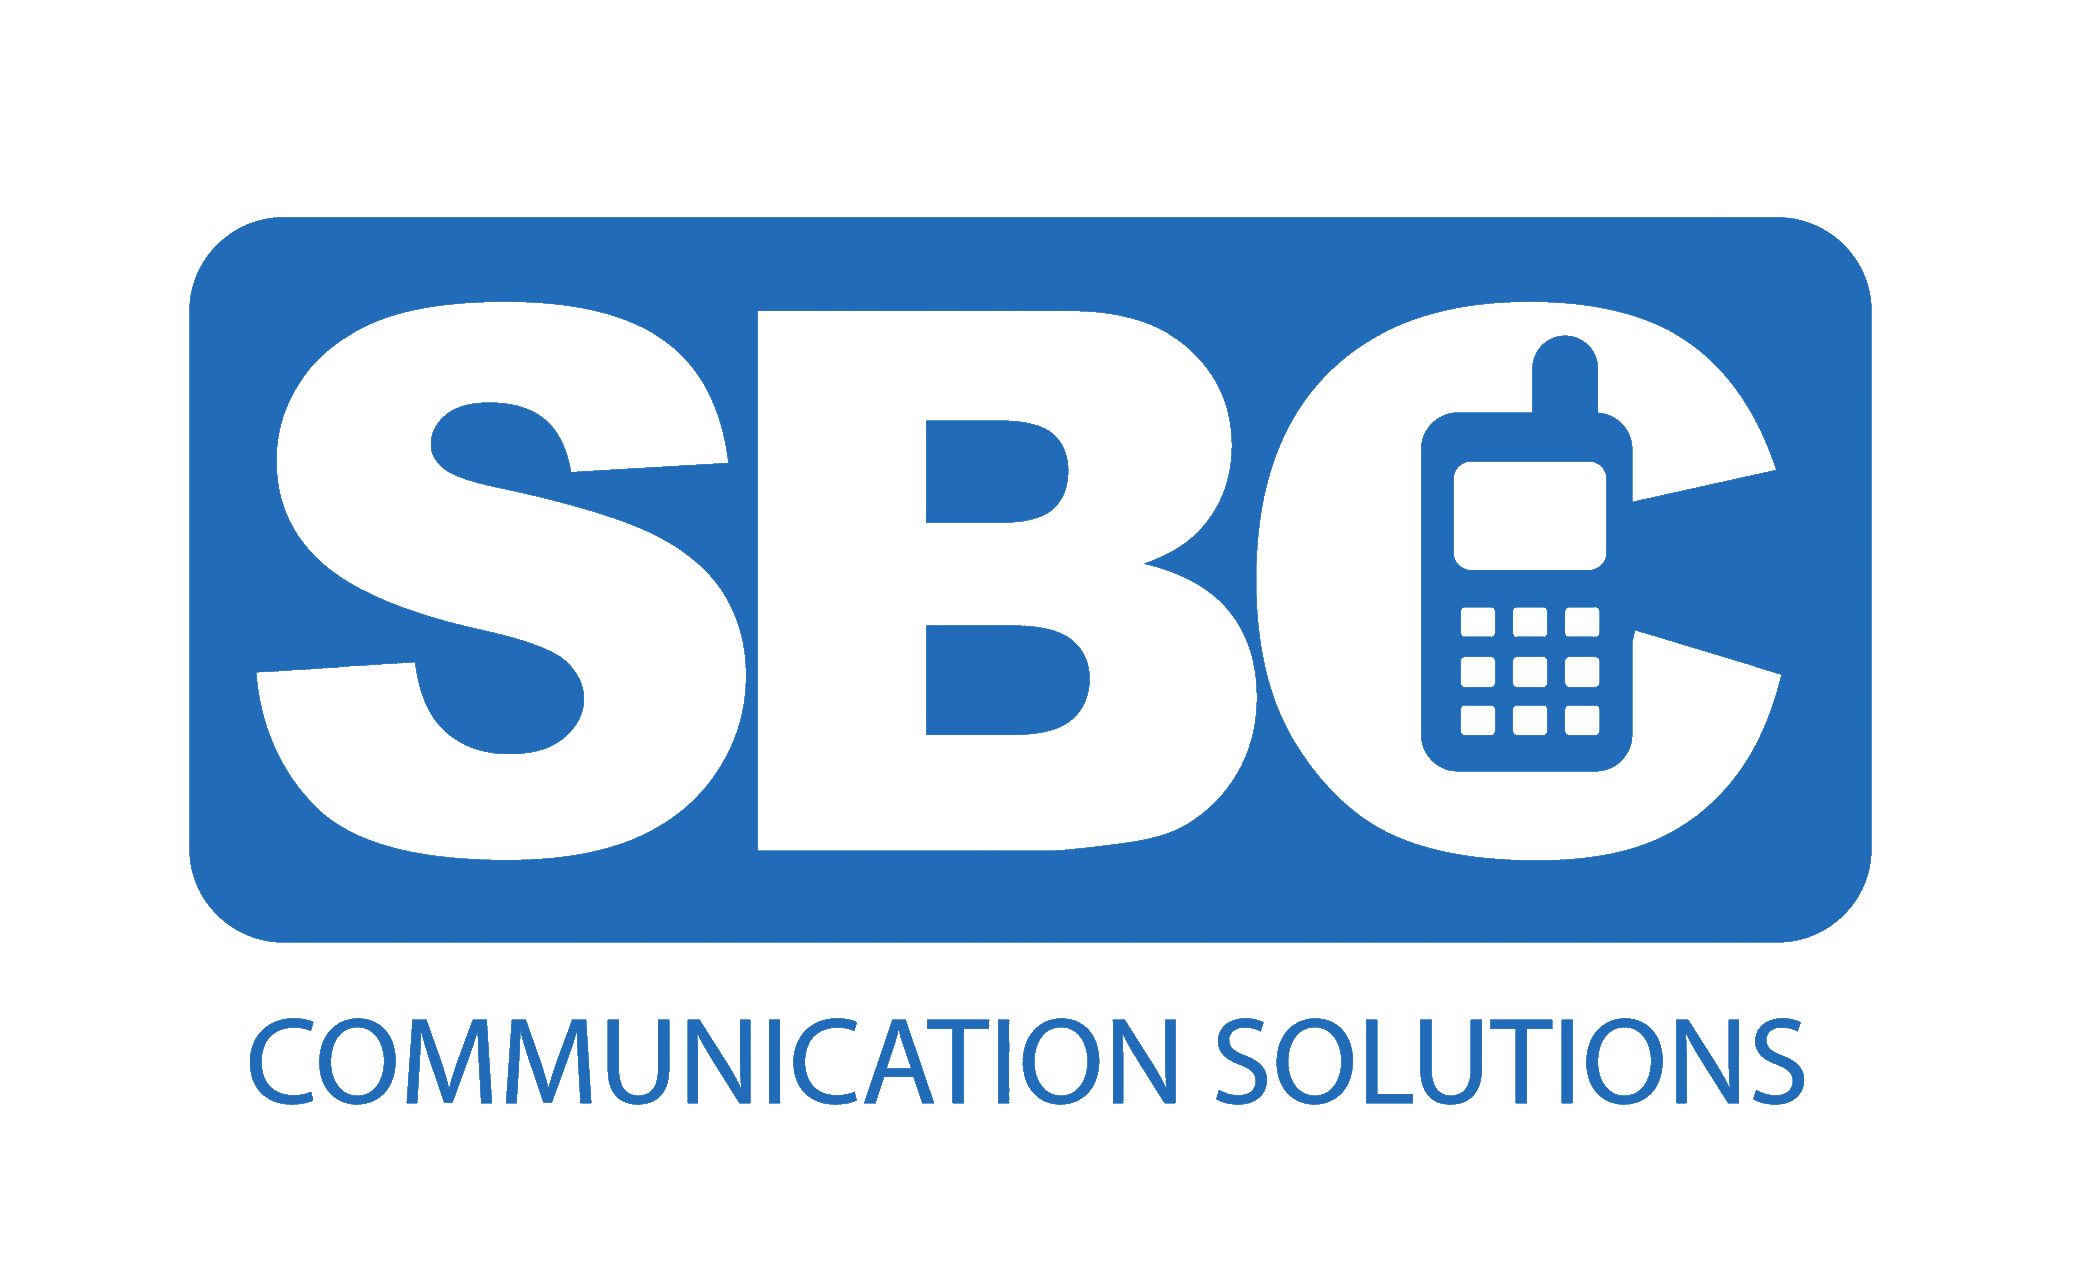 Southern Business Communications Ltd